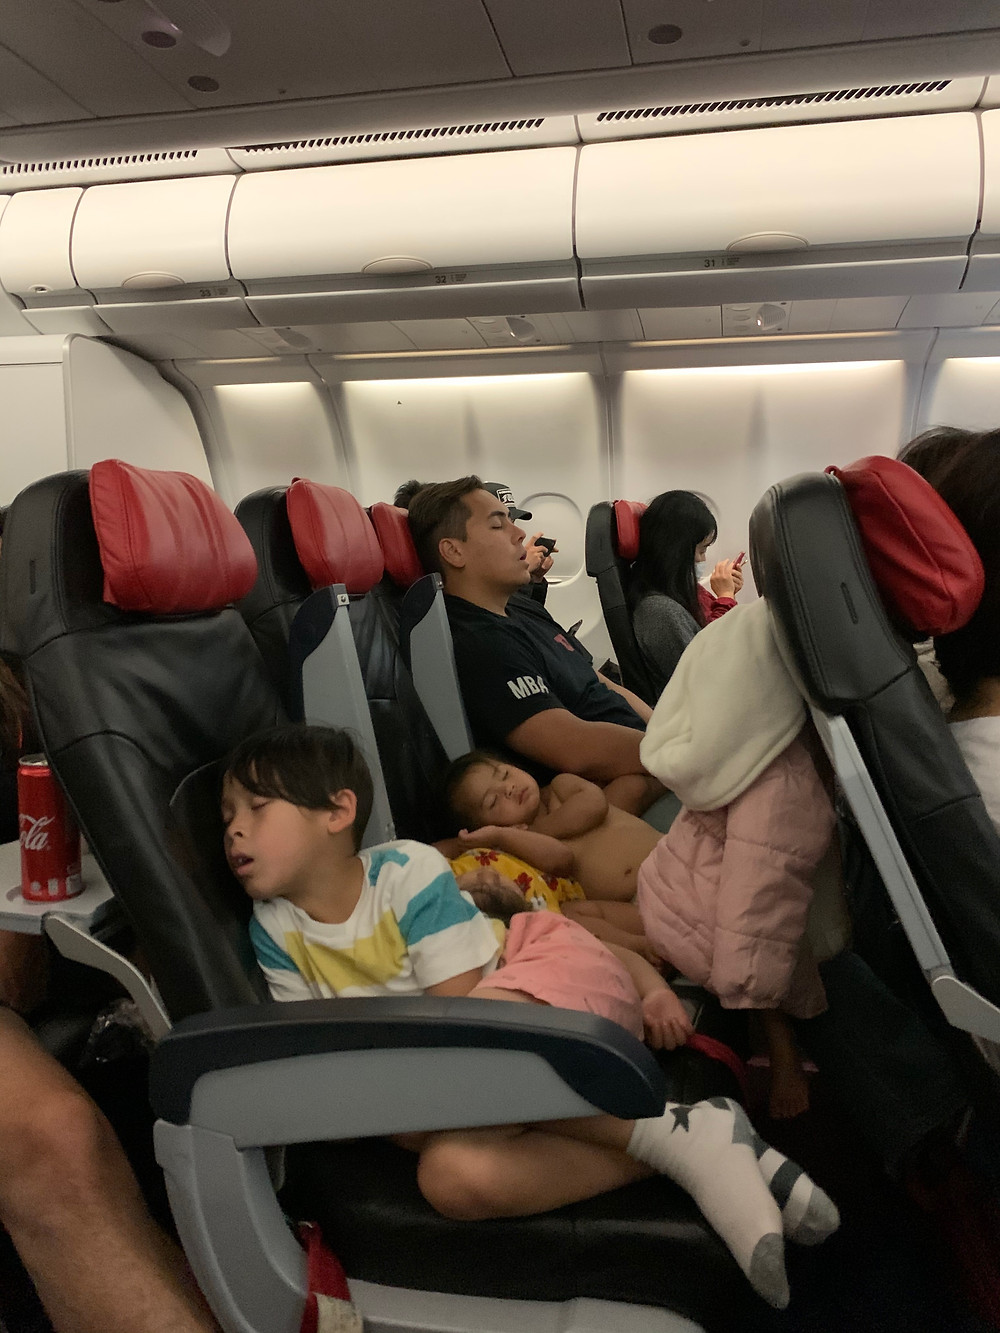 Children and dad sleep on airplane during very long flight.